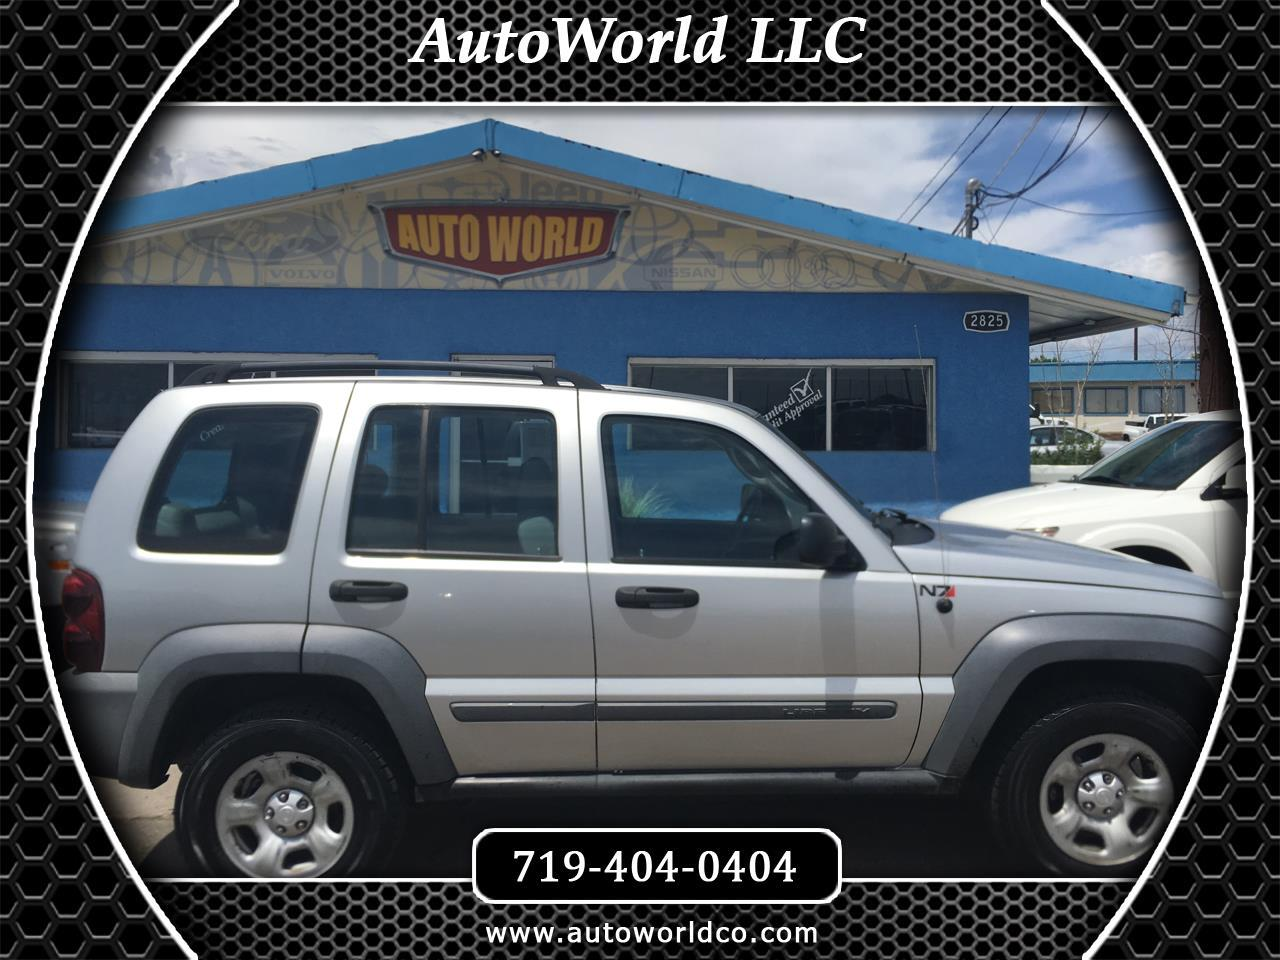 2005 Jeep Liberty 4dr Sport